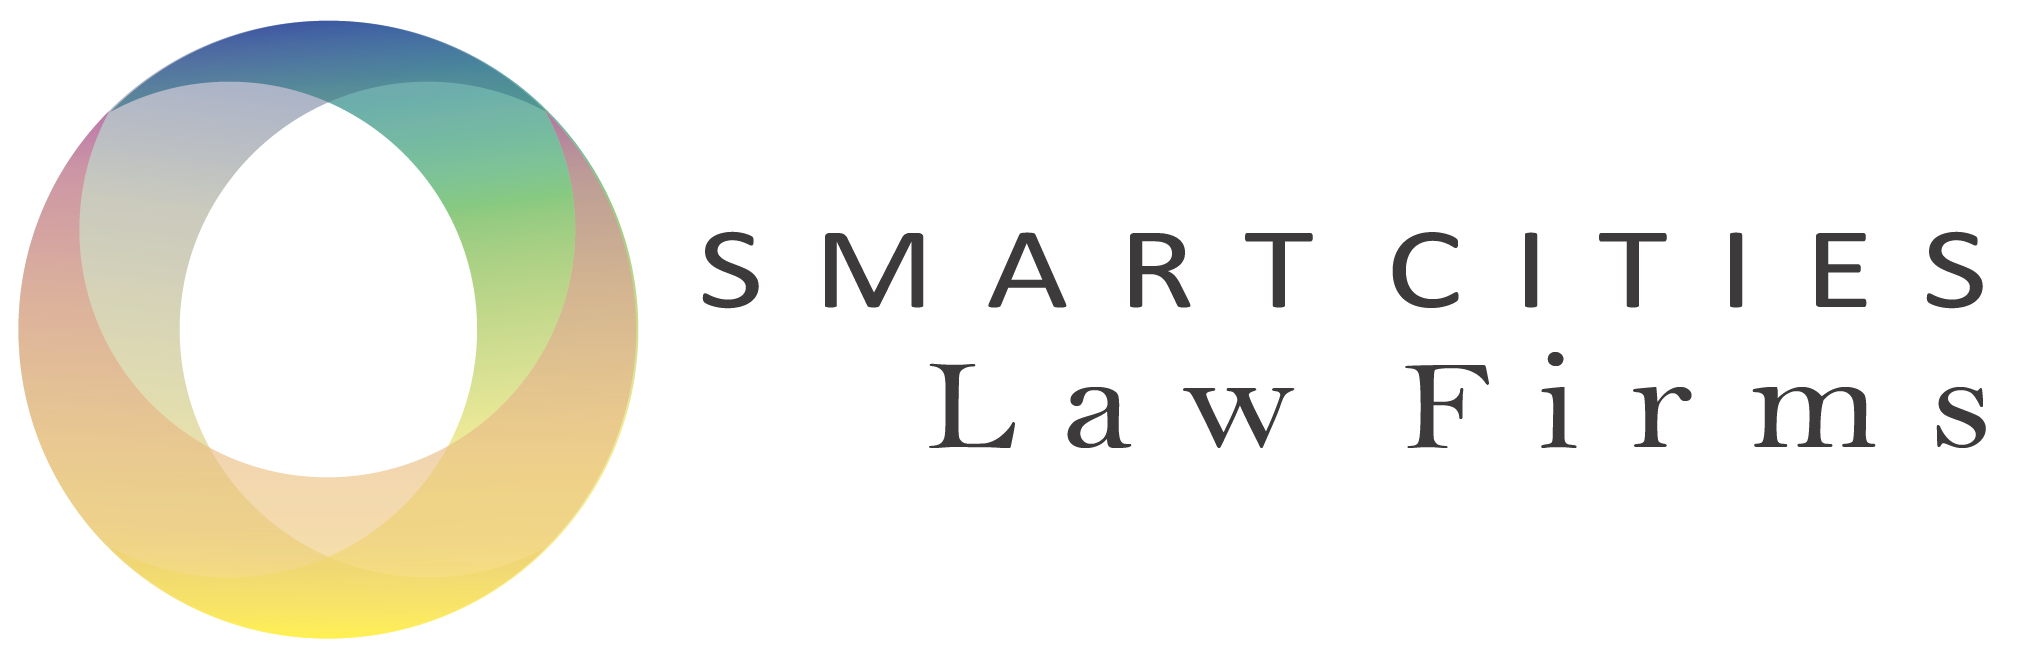 Smart Cities Law Firms